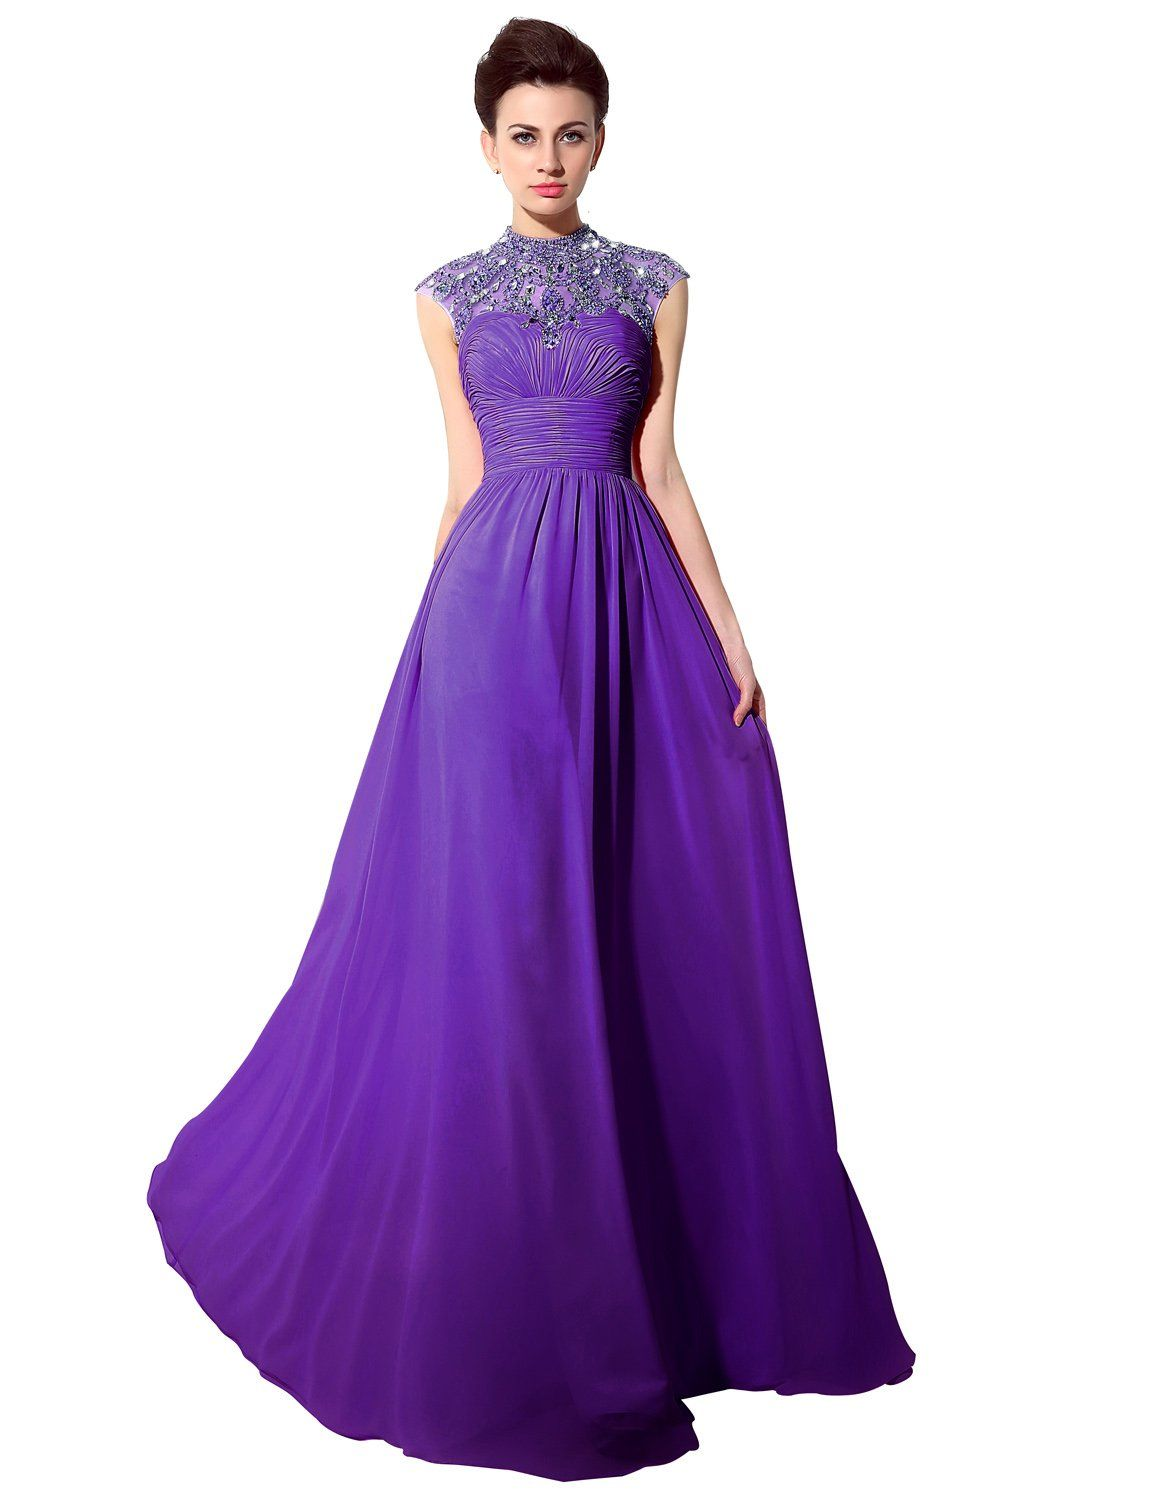 Clearbridal womenus plus size purple prom dress evening gown